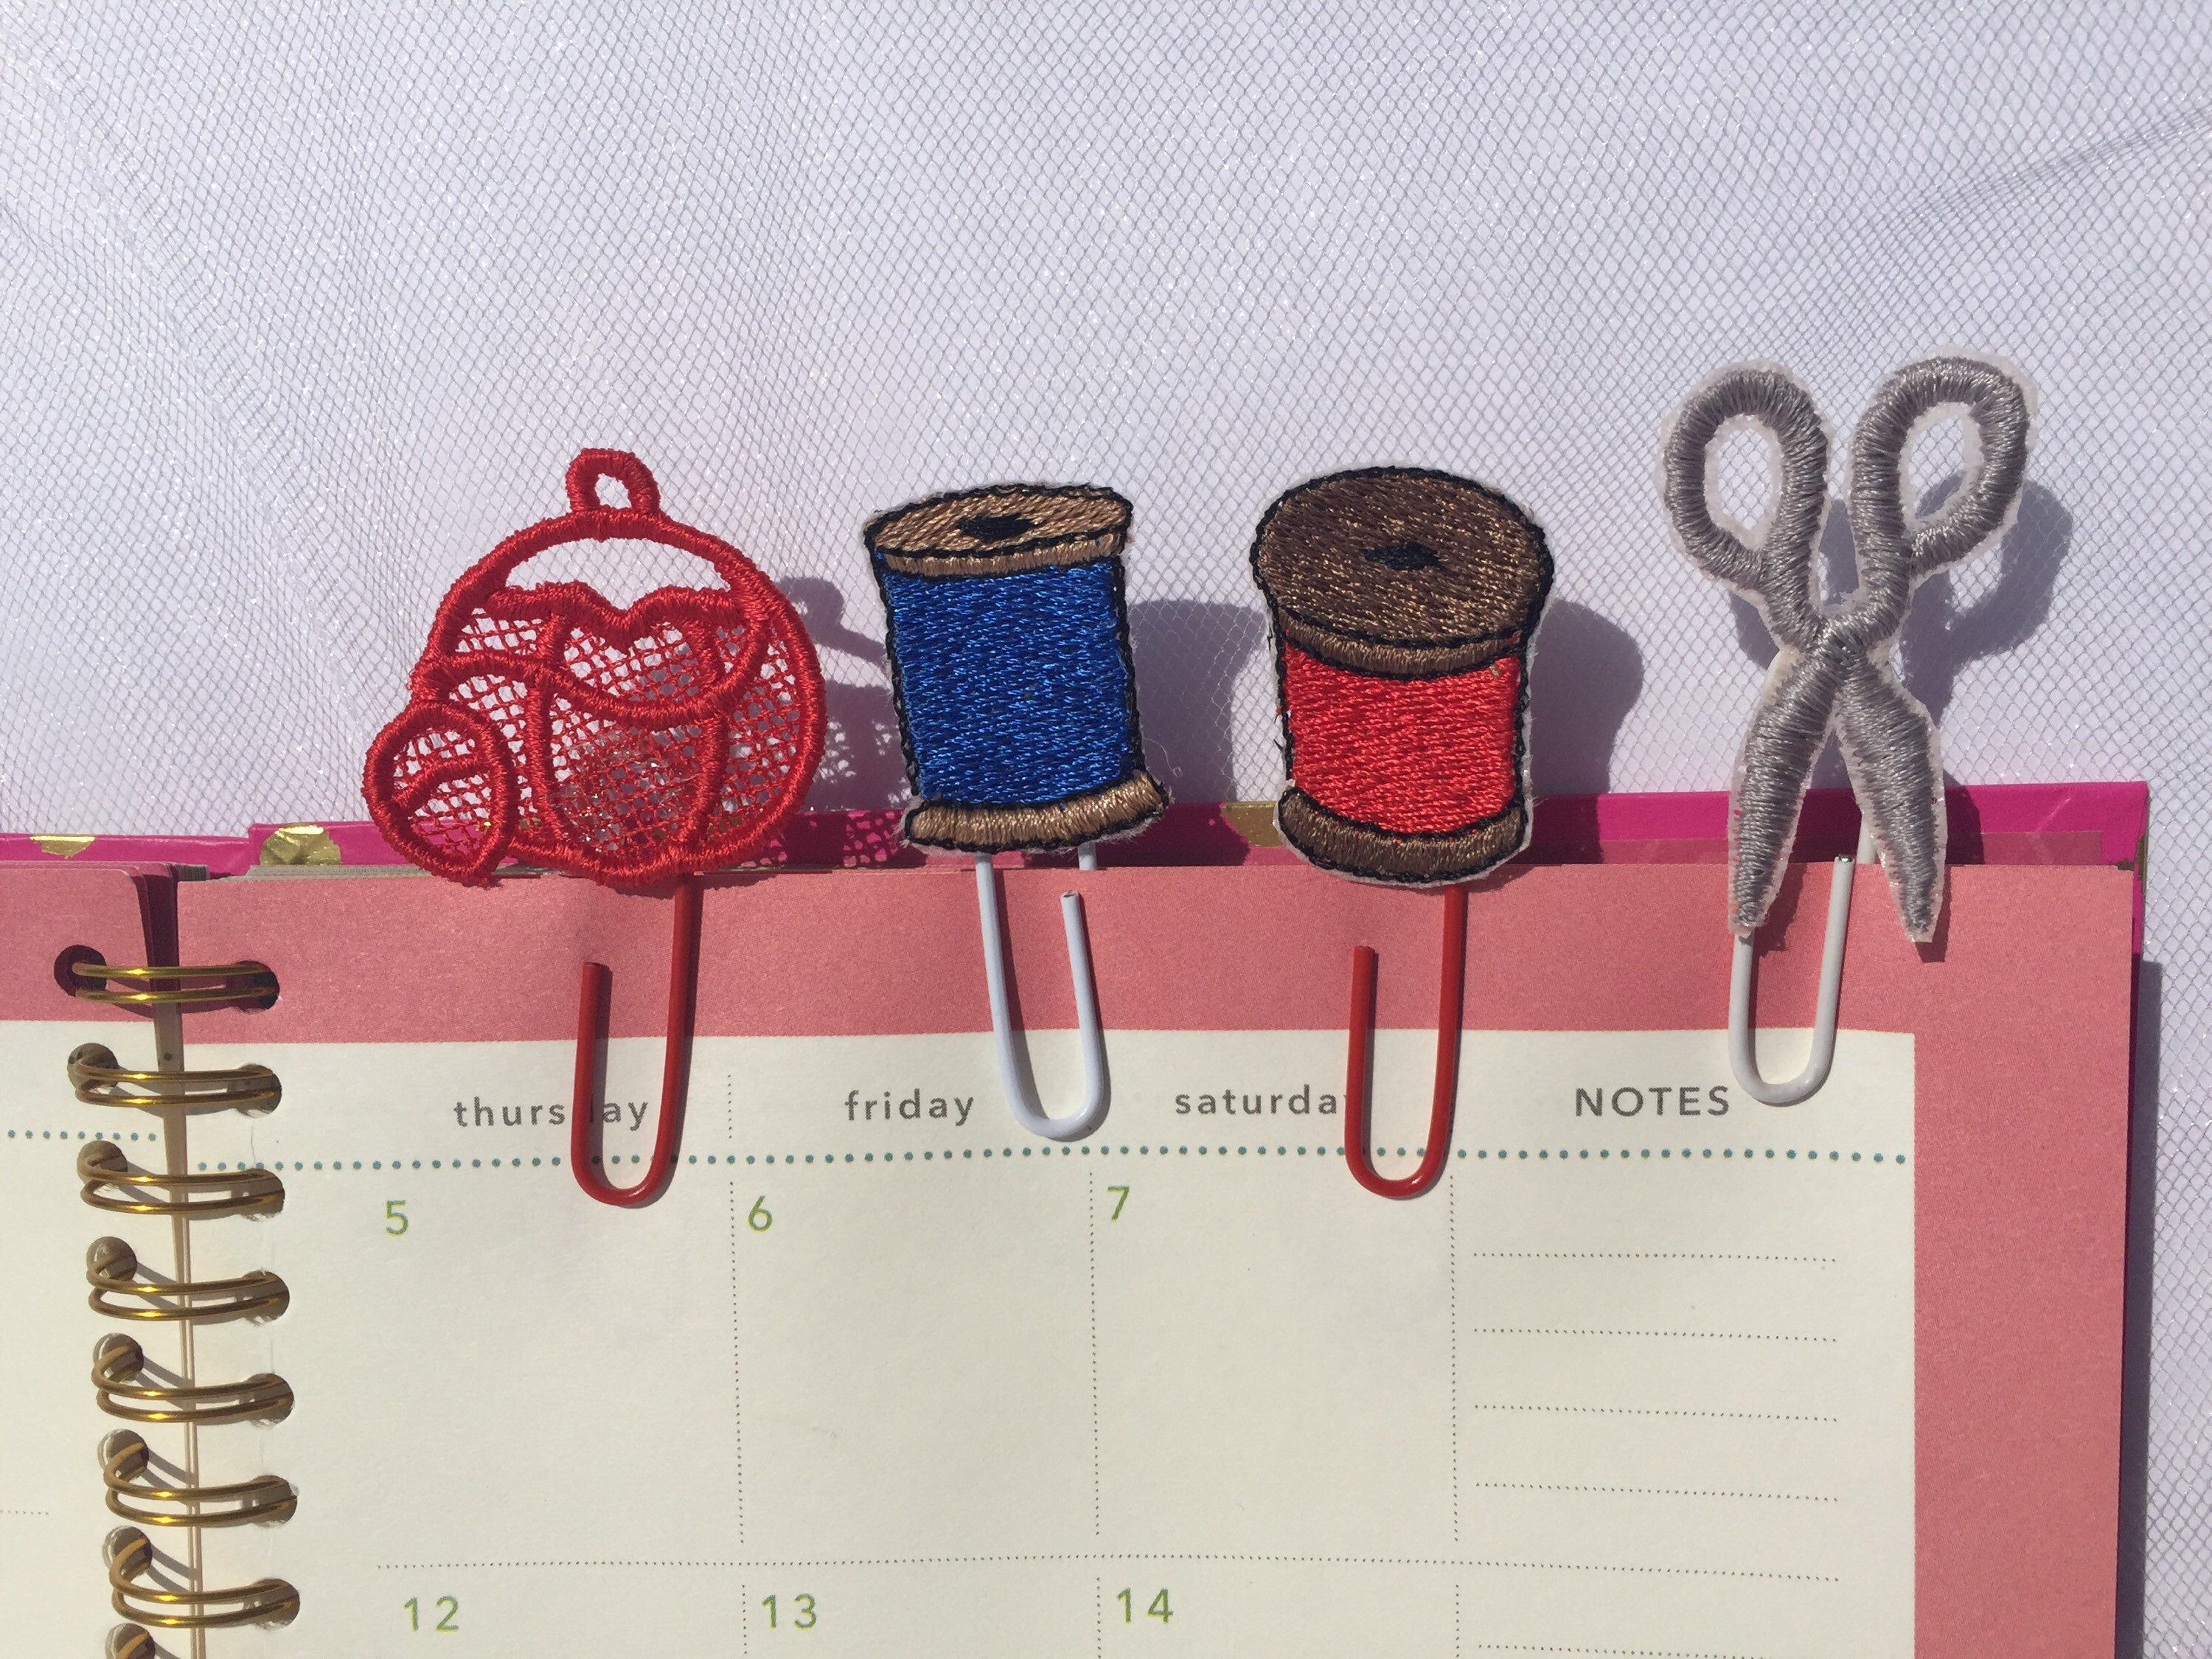 Excited to share this item from my #etsy shop: Embroidered Pincushion Planner Clip, Pincushion Decor, Paper Clips, Sewing Planner Clip, FSL, Pincushion, Bookmark, Sewing Room Decor #bookmark #sewingdecor #laceplannerclip #embroideryaddict #plannerlove